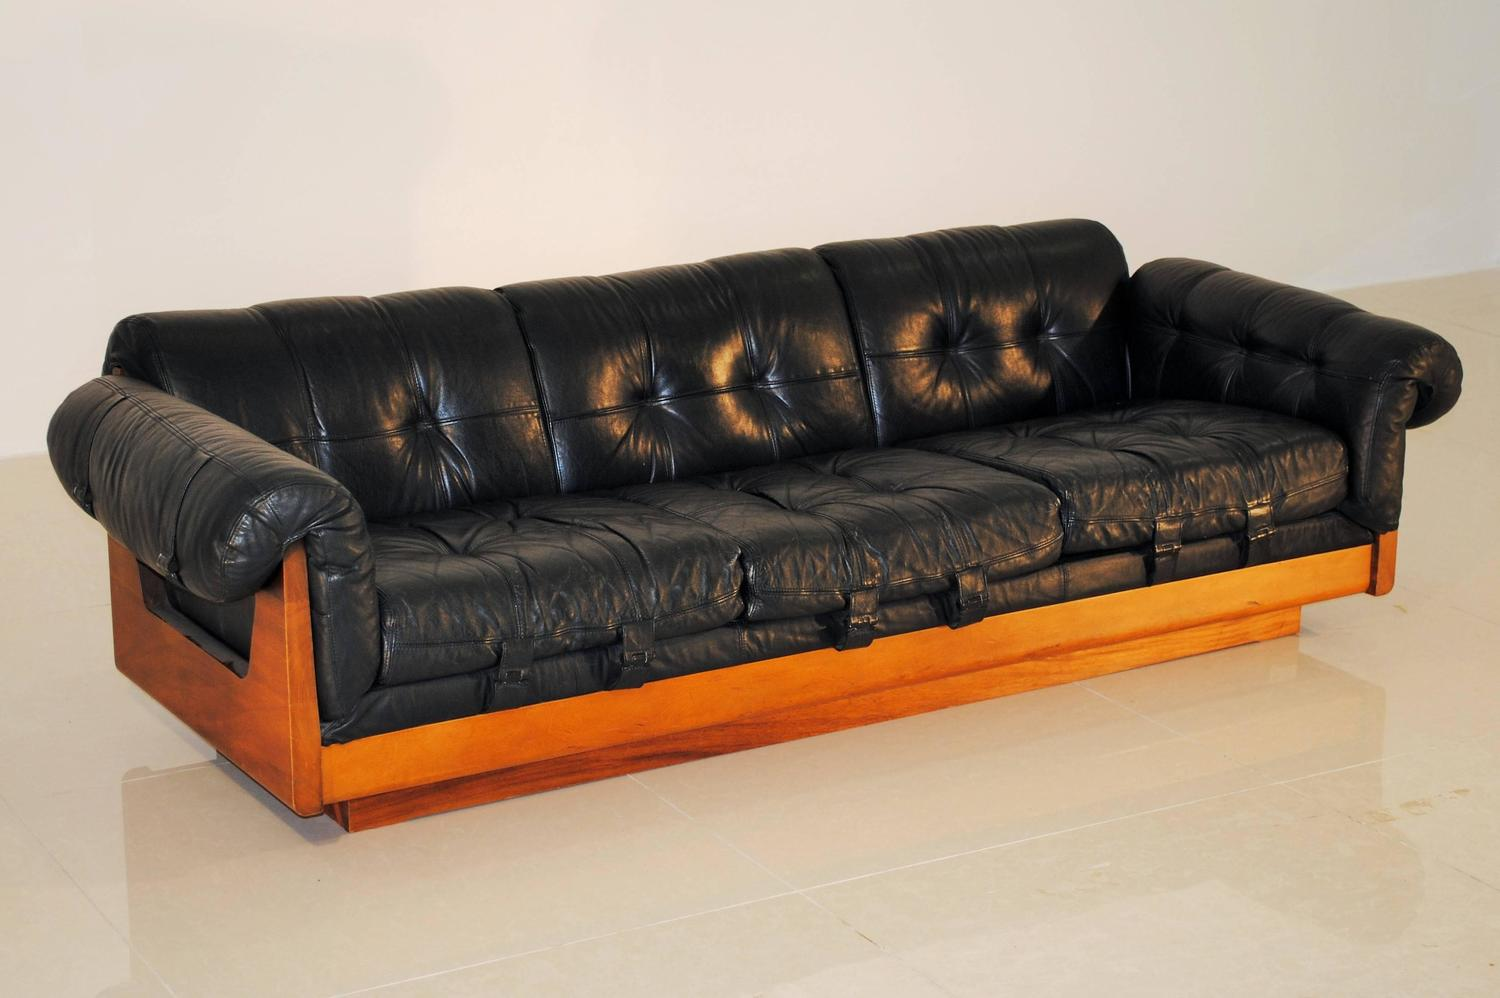 Superb Low Three Seat Leather Sofa by Soto Costa Rica